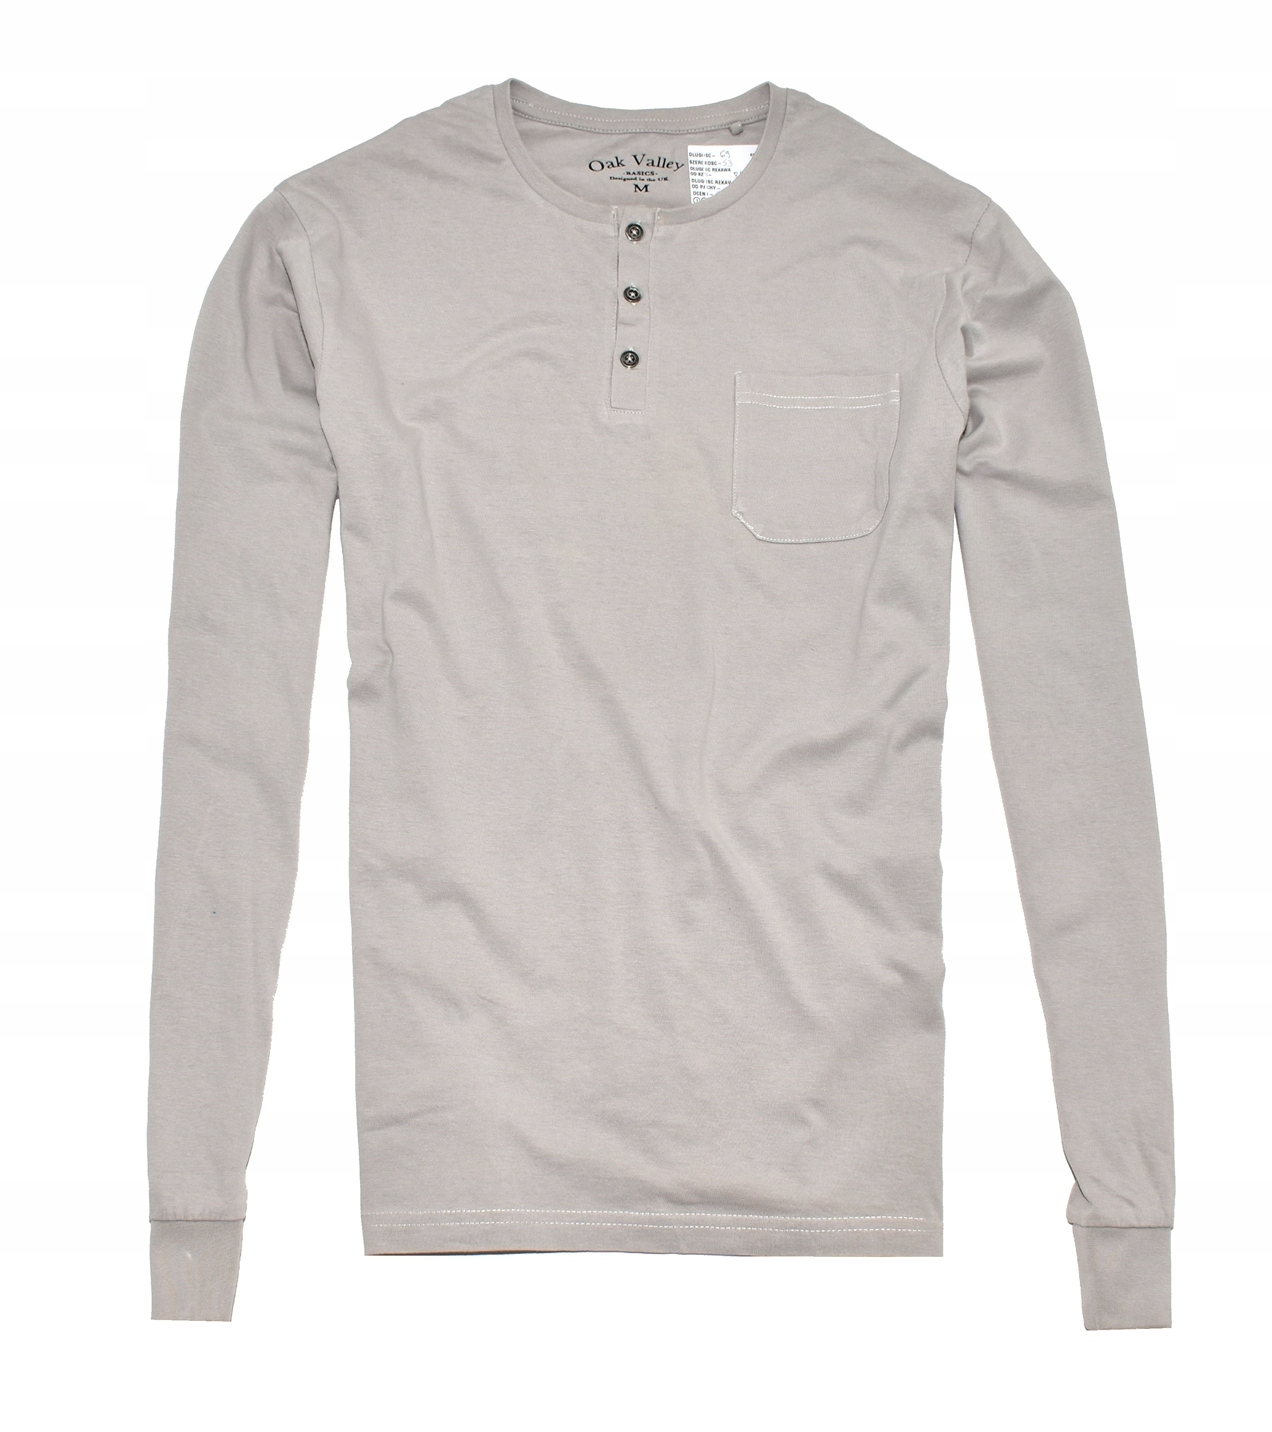 MM 214 OAK VALLEY_ORYGINAL STONE LONG SLEEVE_M